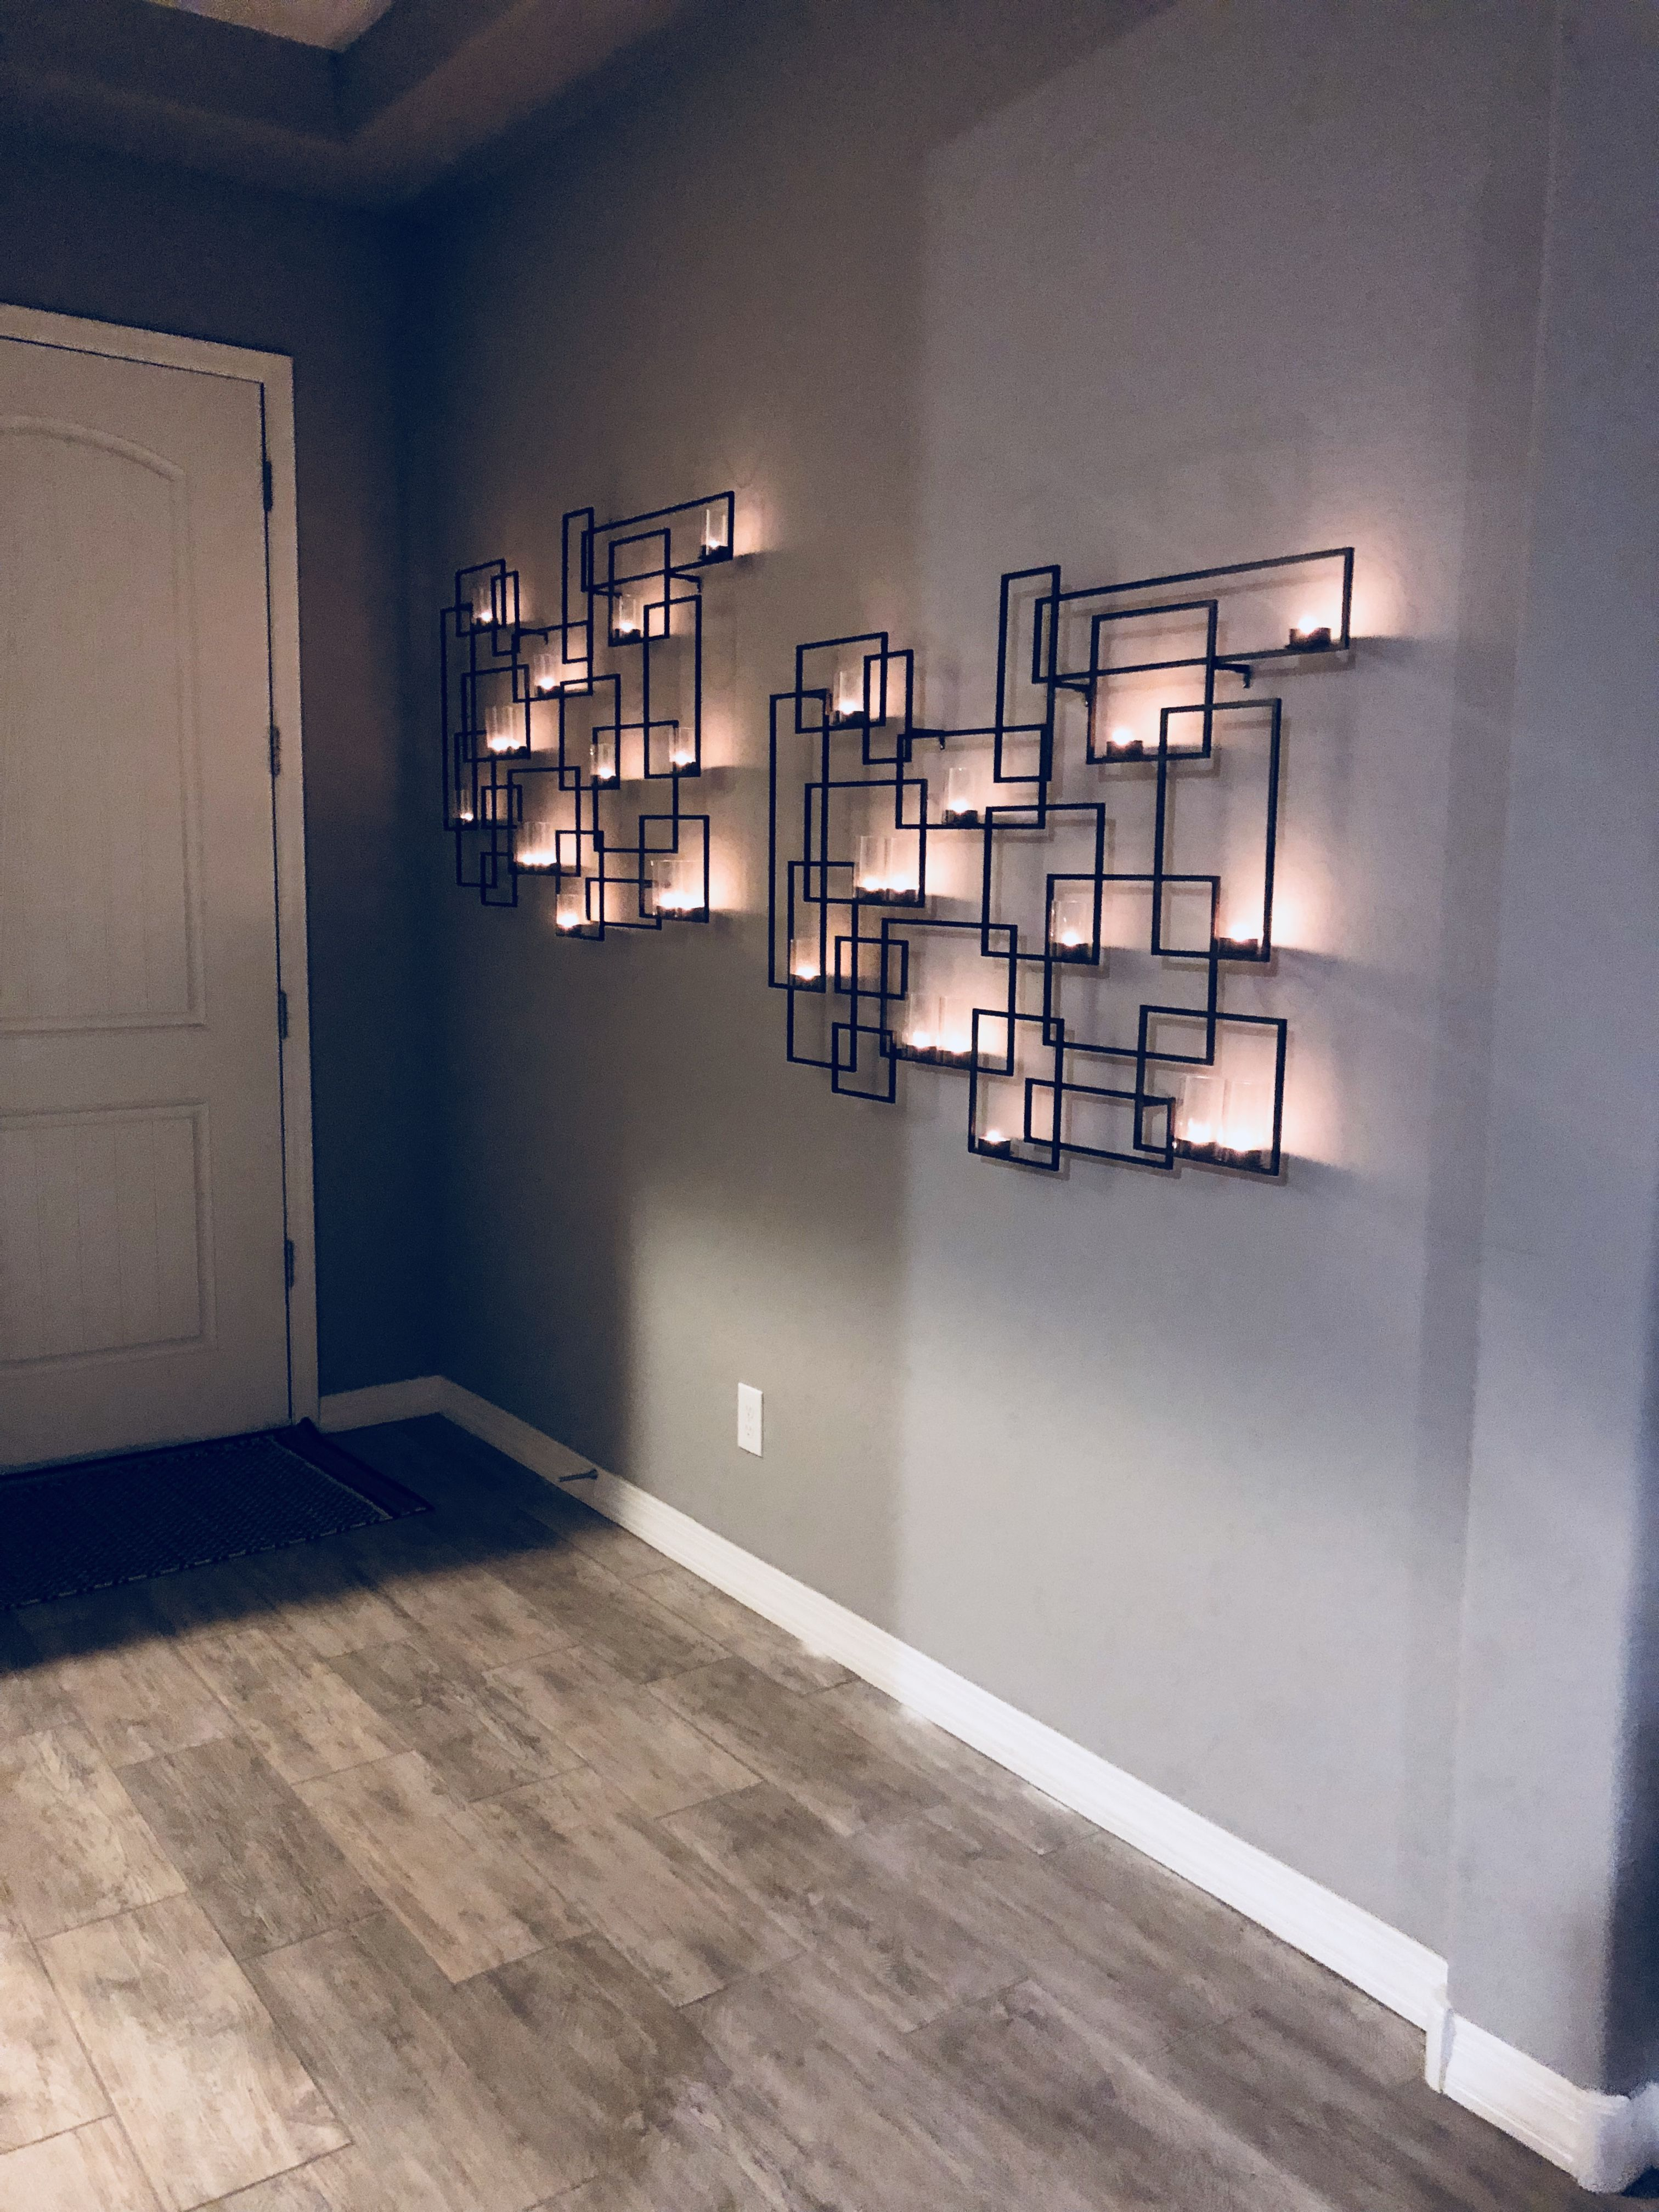 Circuit Metal Wall Candle Holder + Reviews | Crate and Barrel | Candle  holders wall decor, Metal wall candle holders, Wall candles